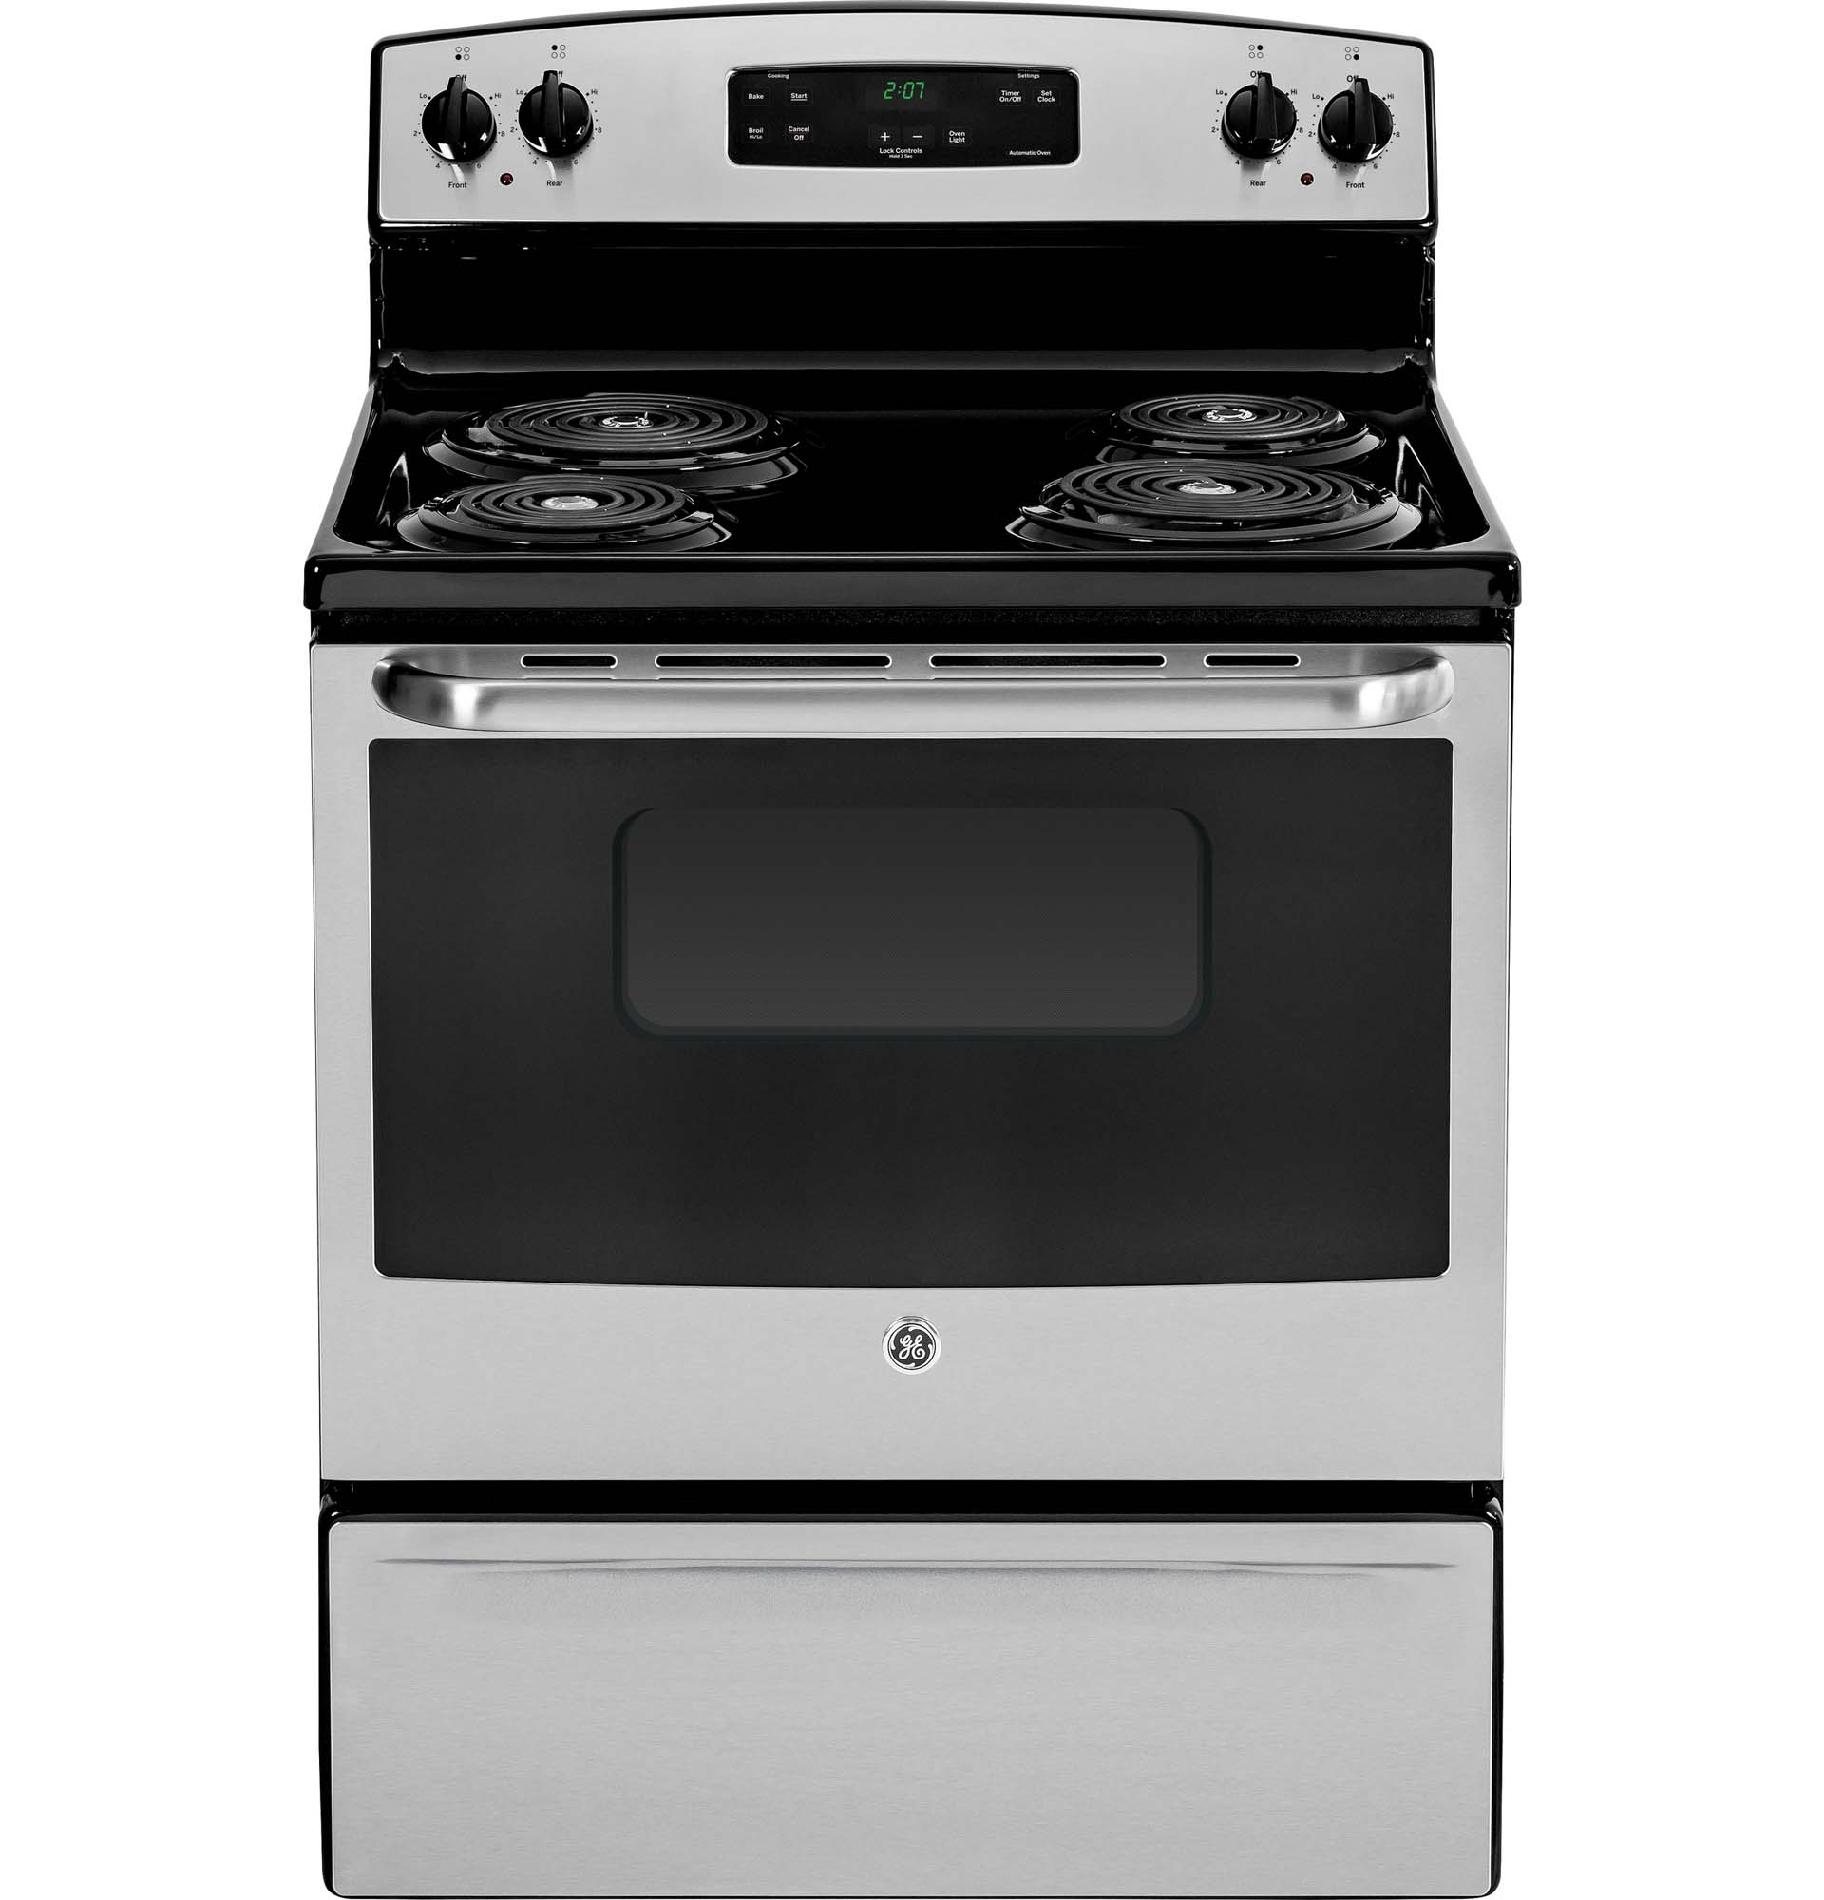 GE Appliances JBS27RFSS 5.0 cu. ft. Electric Range - Stainless Steel